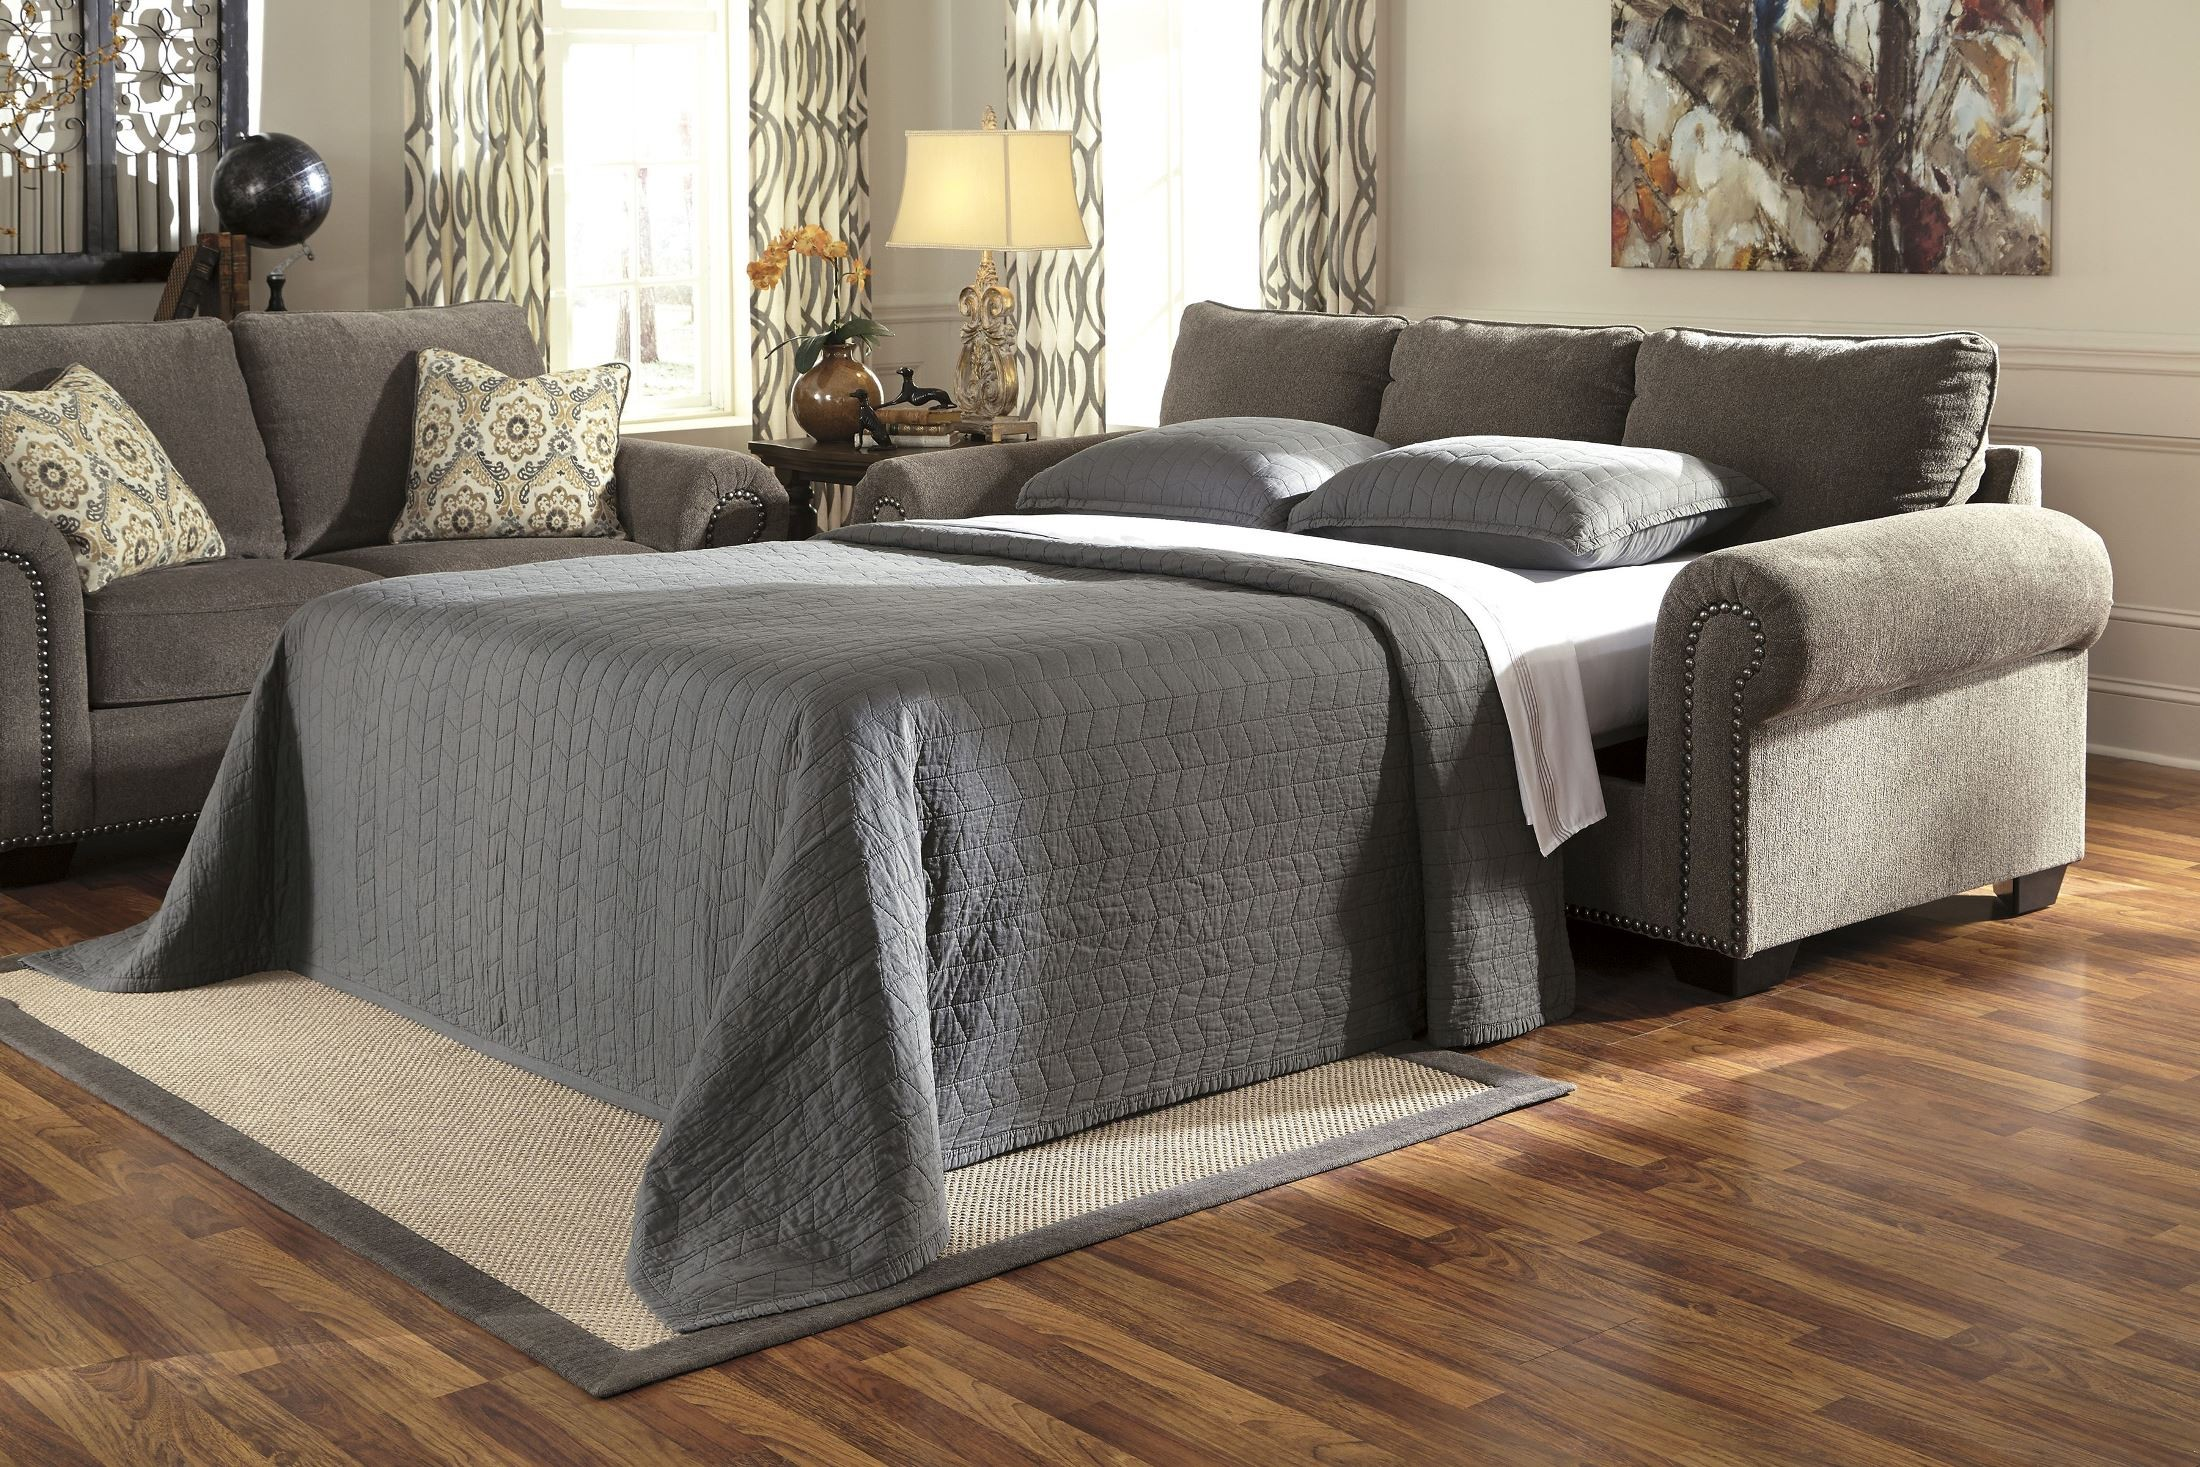 Emelen Alloy Queen Sofa Sleeper from Ashley 4560039 Coleman